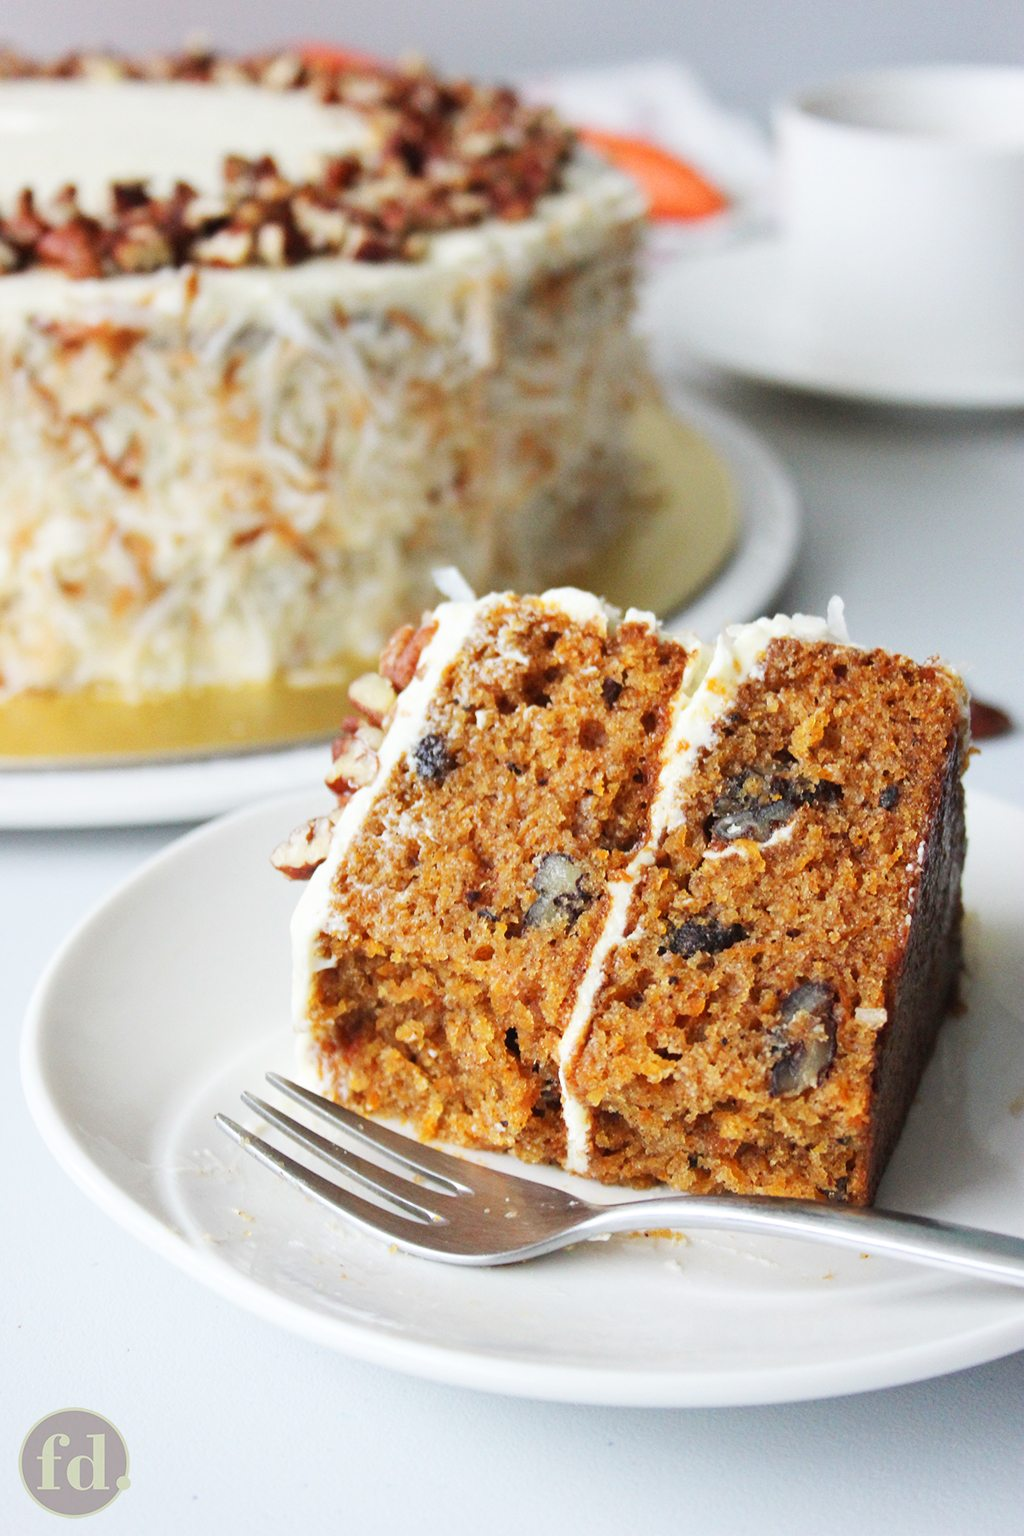 super moist and tender carrot cake with delicious cream cheese frosting